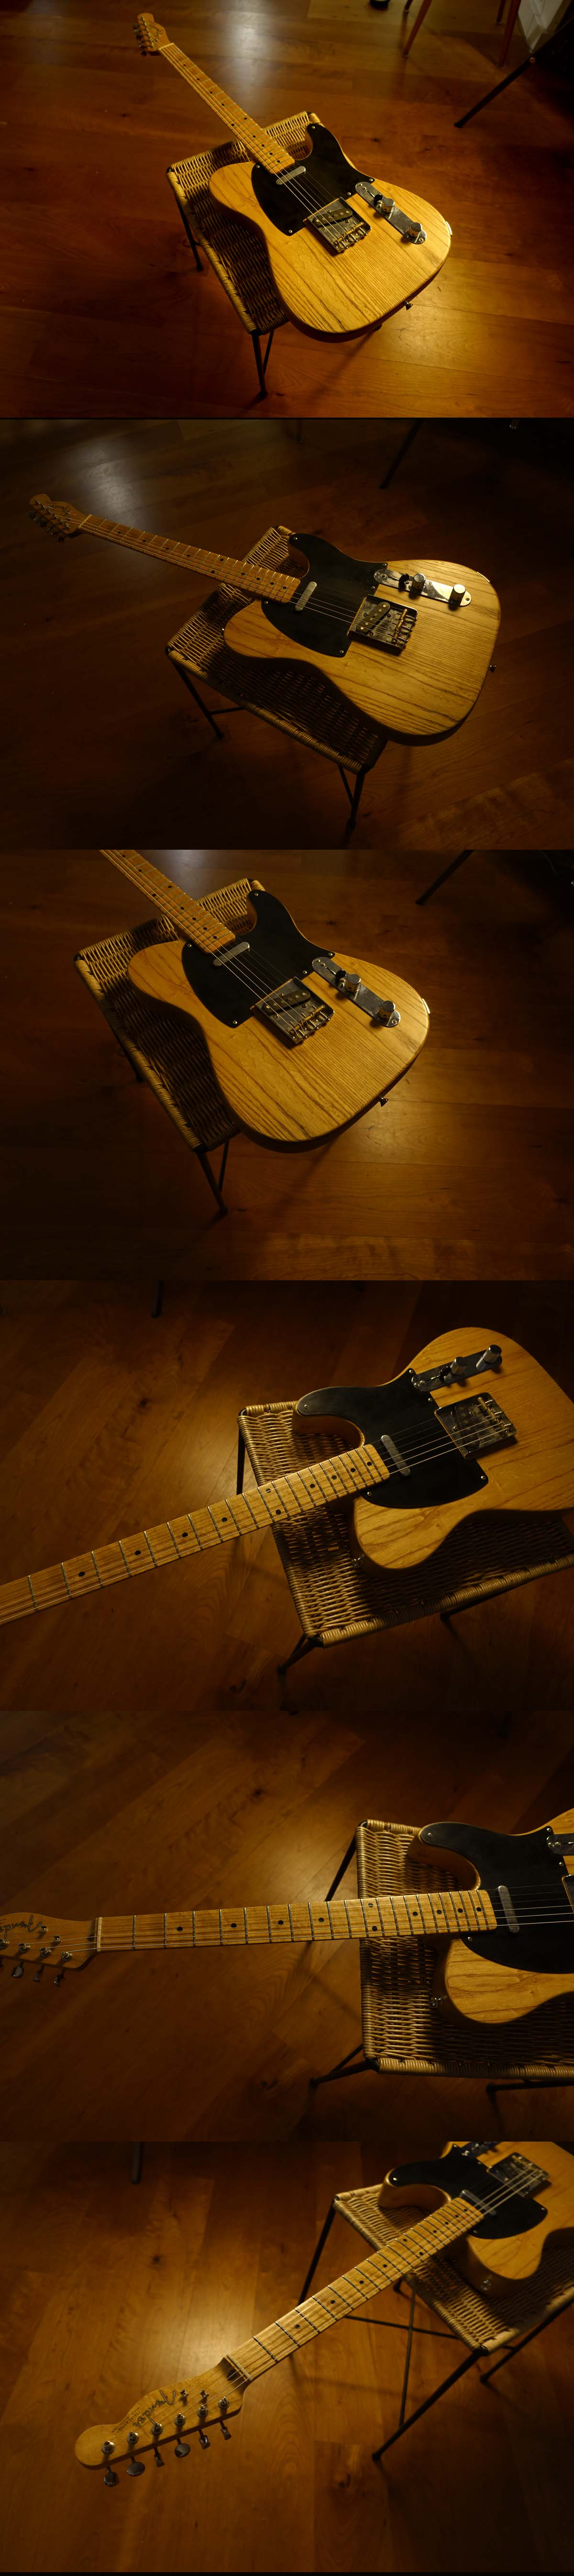 Warmoth Tele with Fender Lincence Parts (lightweight - great